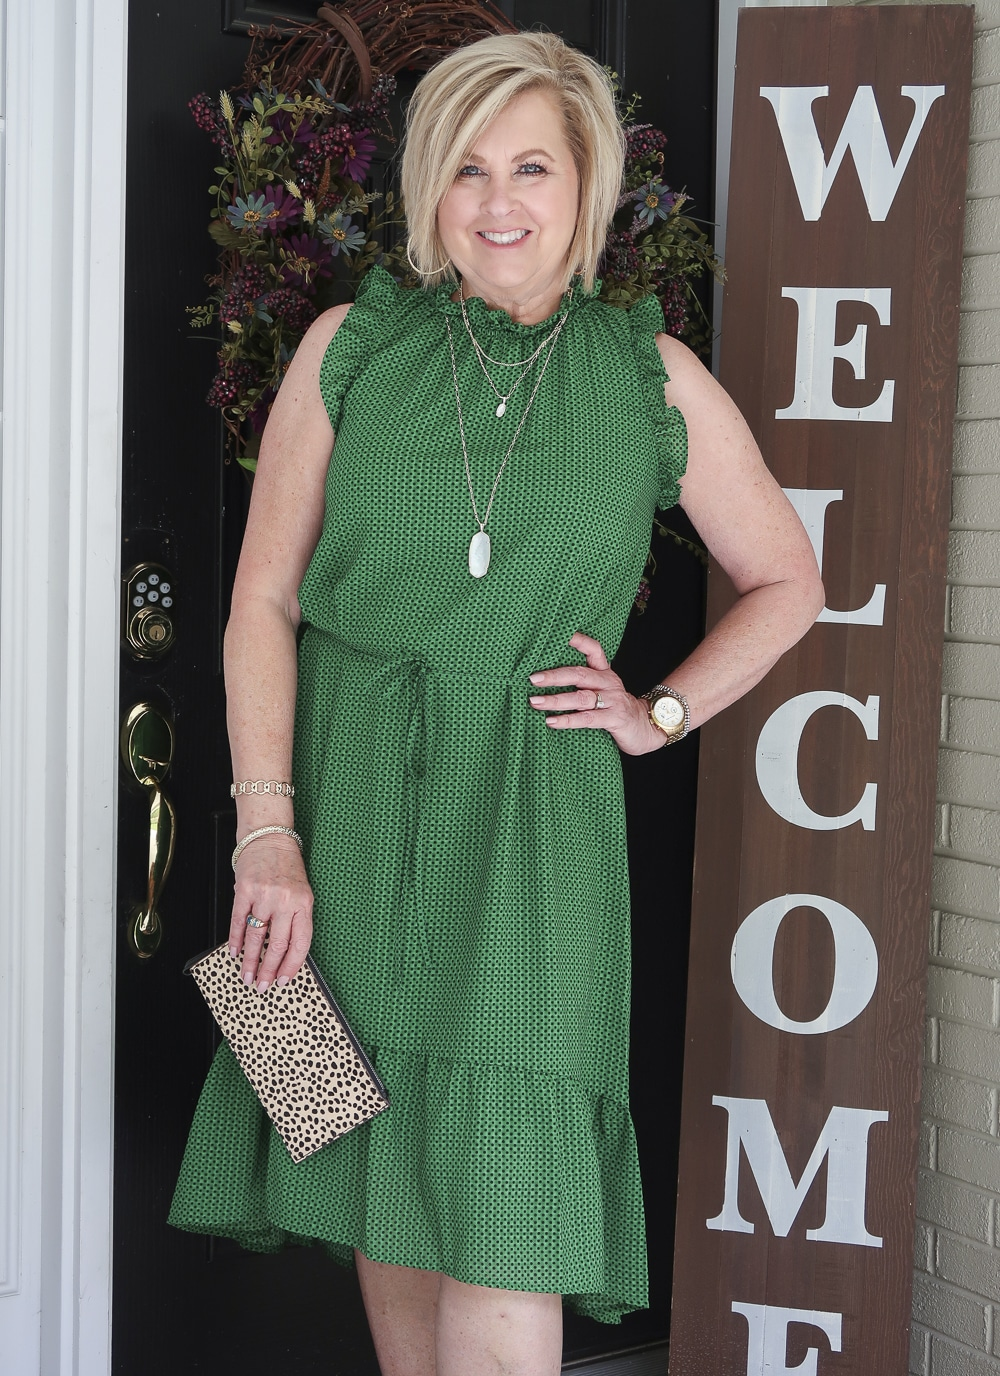 Fashion Blogger 50 Is Not Old is wearing a green polka dotted dress that has a high neck and ruffles plus gold jewelry from Kendra Scott